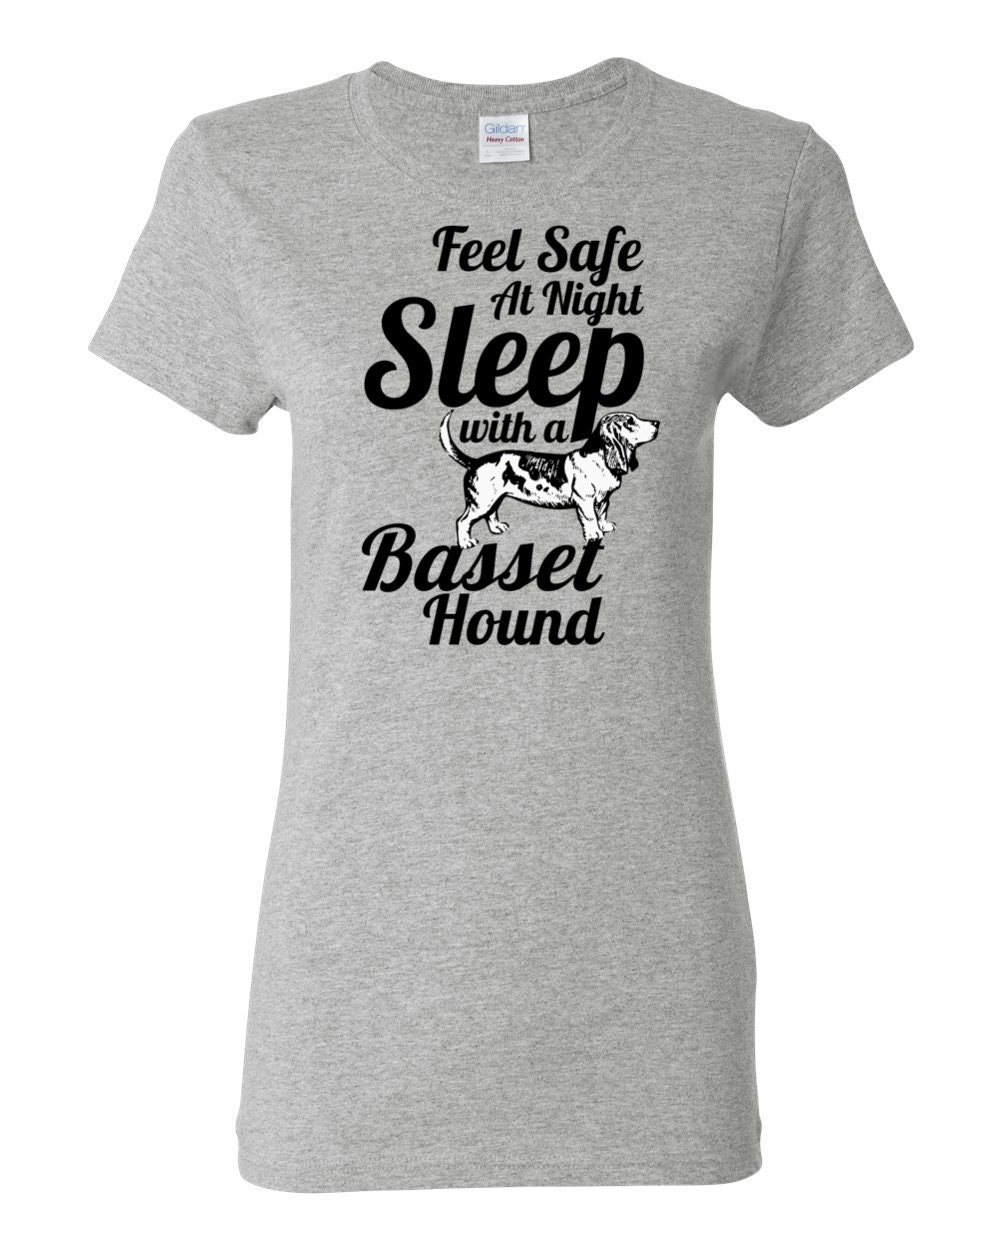 Basset Hound T-shirt - Feel Safe at Night Sleep With a Basset Hound - My Dog Basset Hound Womens T-shirt